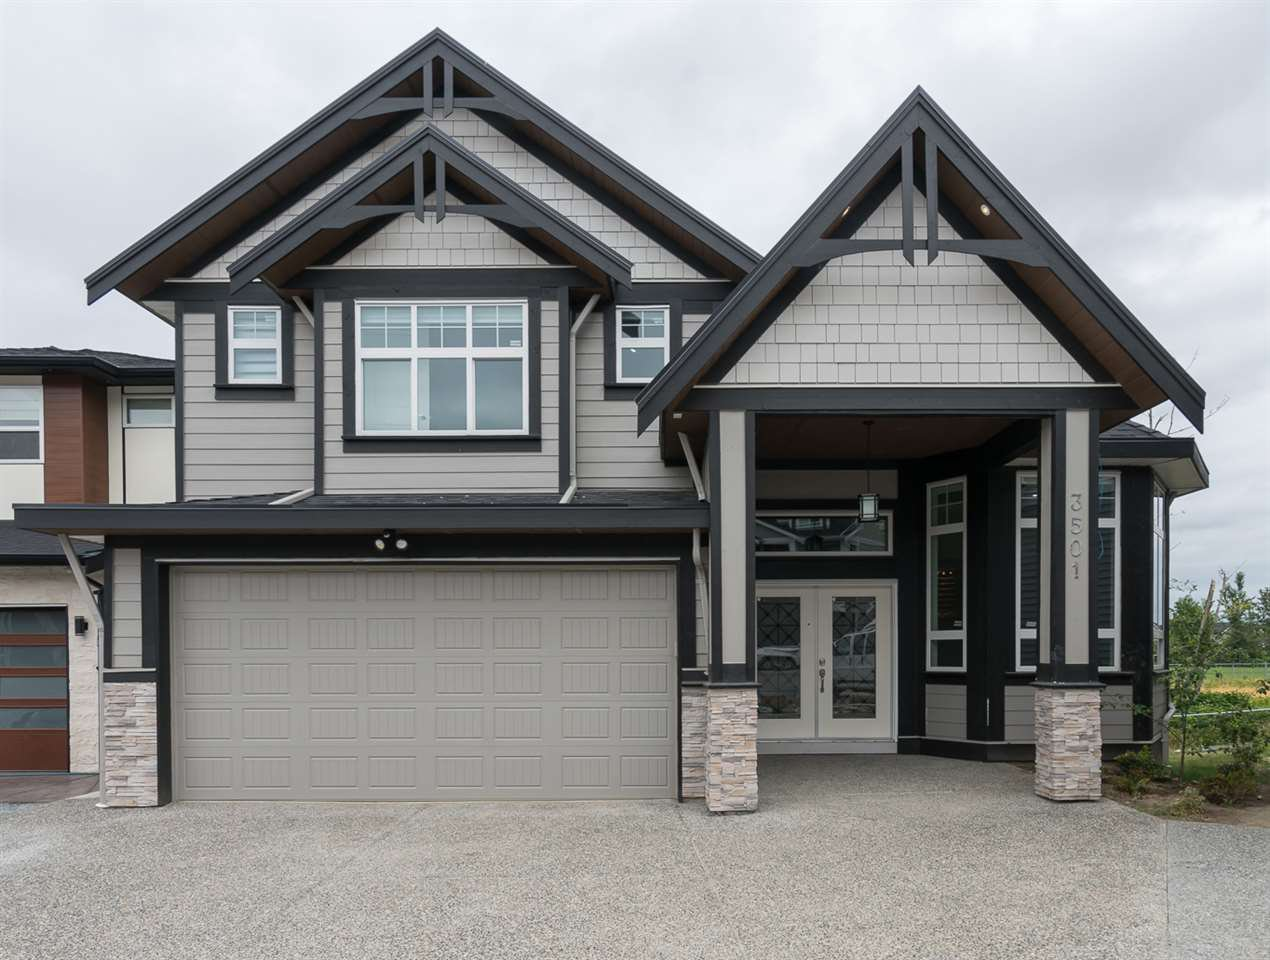 Main Photo: 3501 HILL PARK Place in Abbotsford: Abbotsford West House for sale : MLS®# R2480553